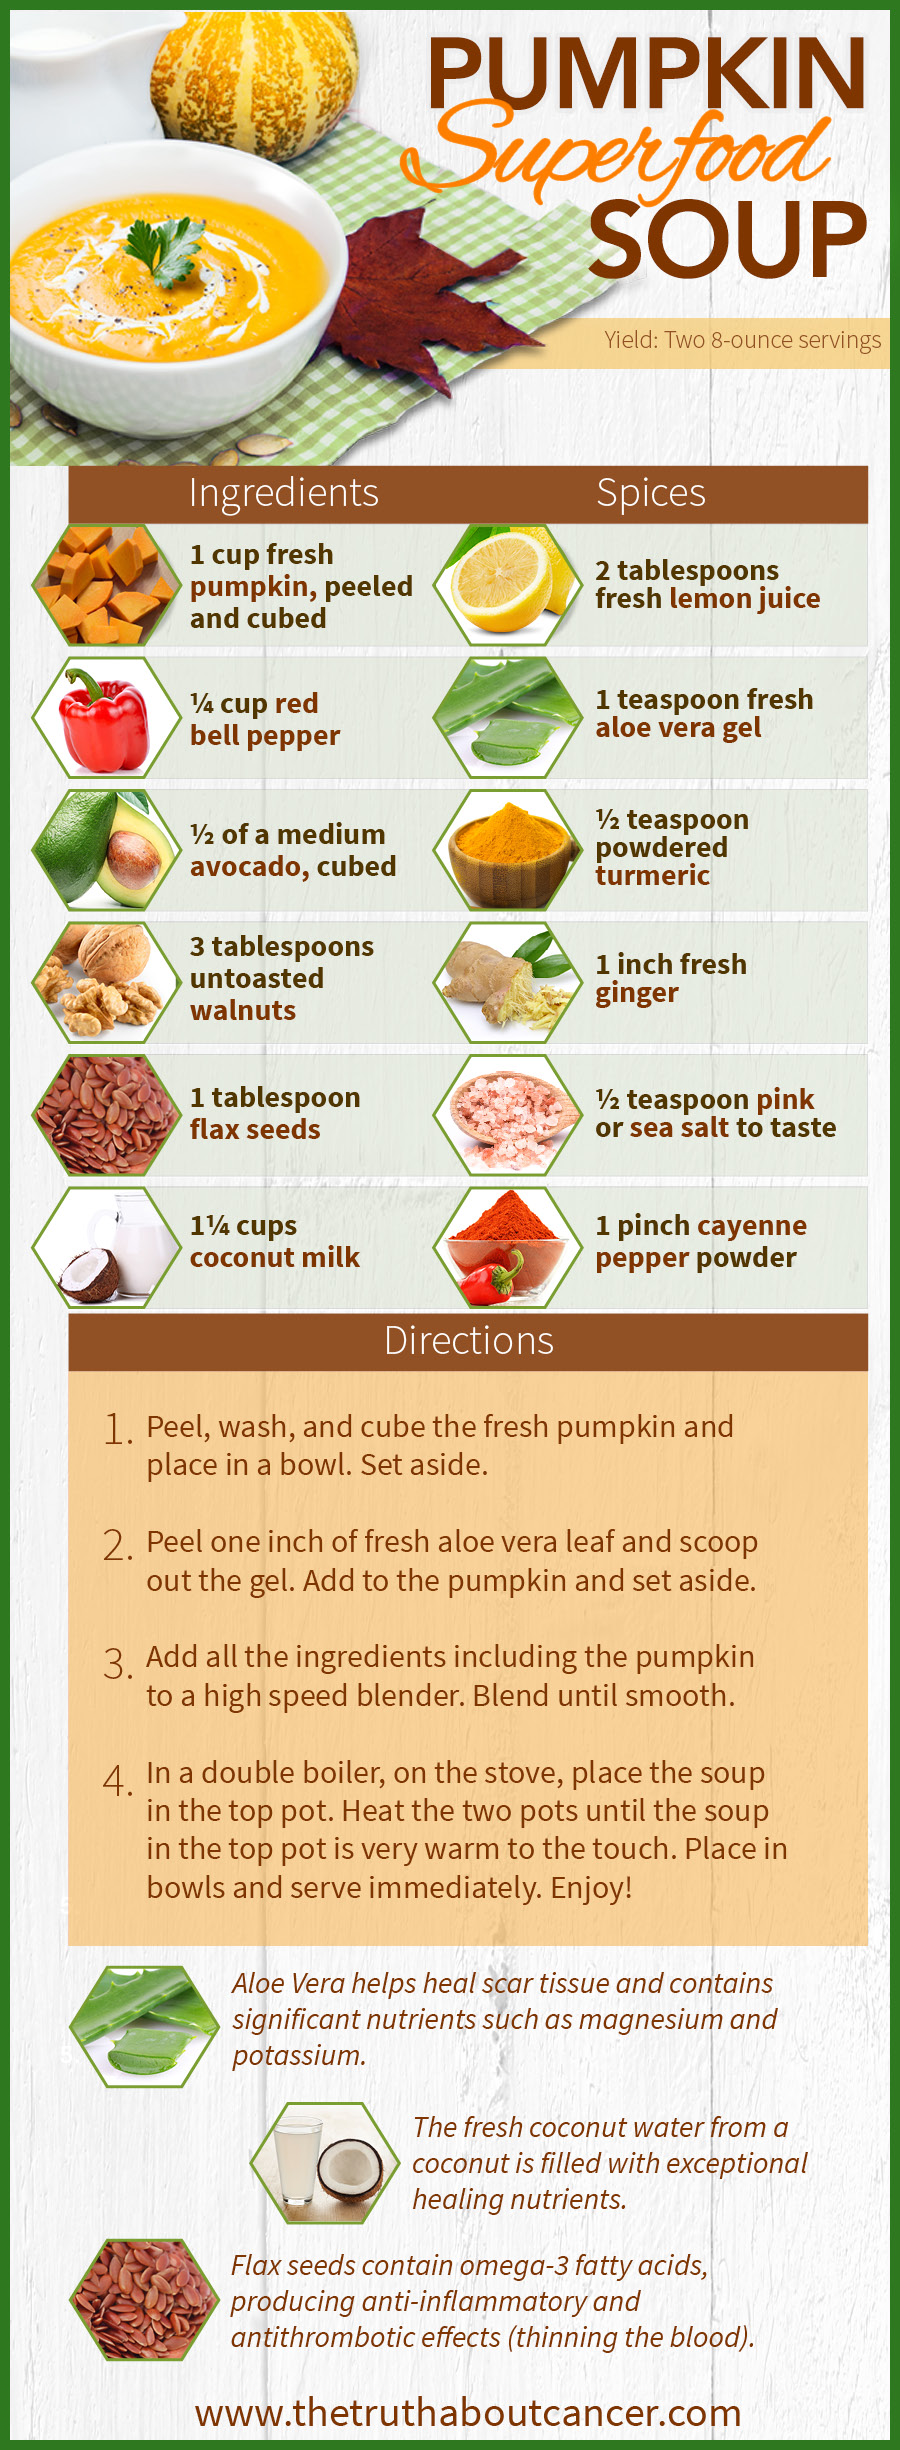 Pumpking Superfood Soup Recipe to Alleviate Dysphagia